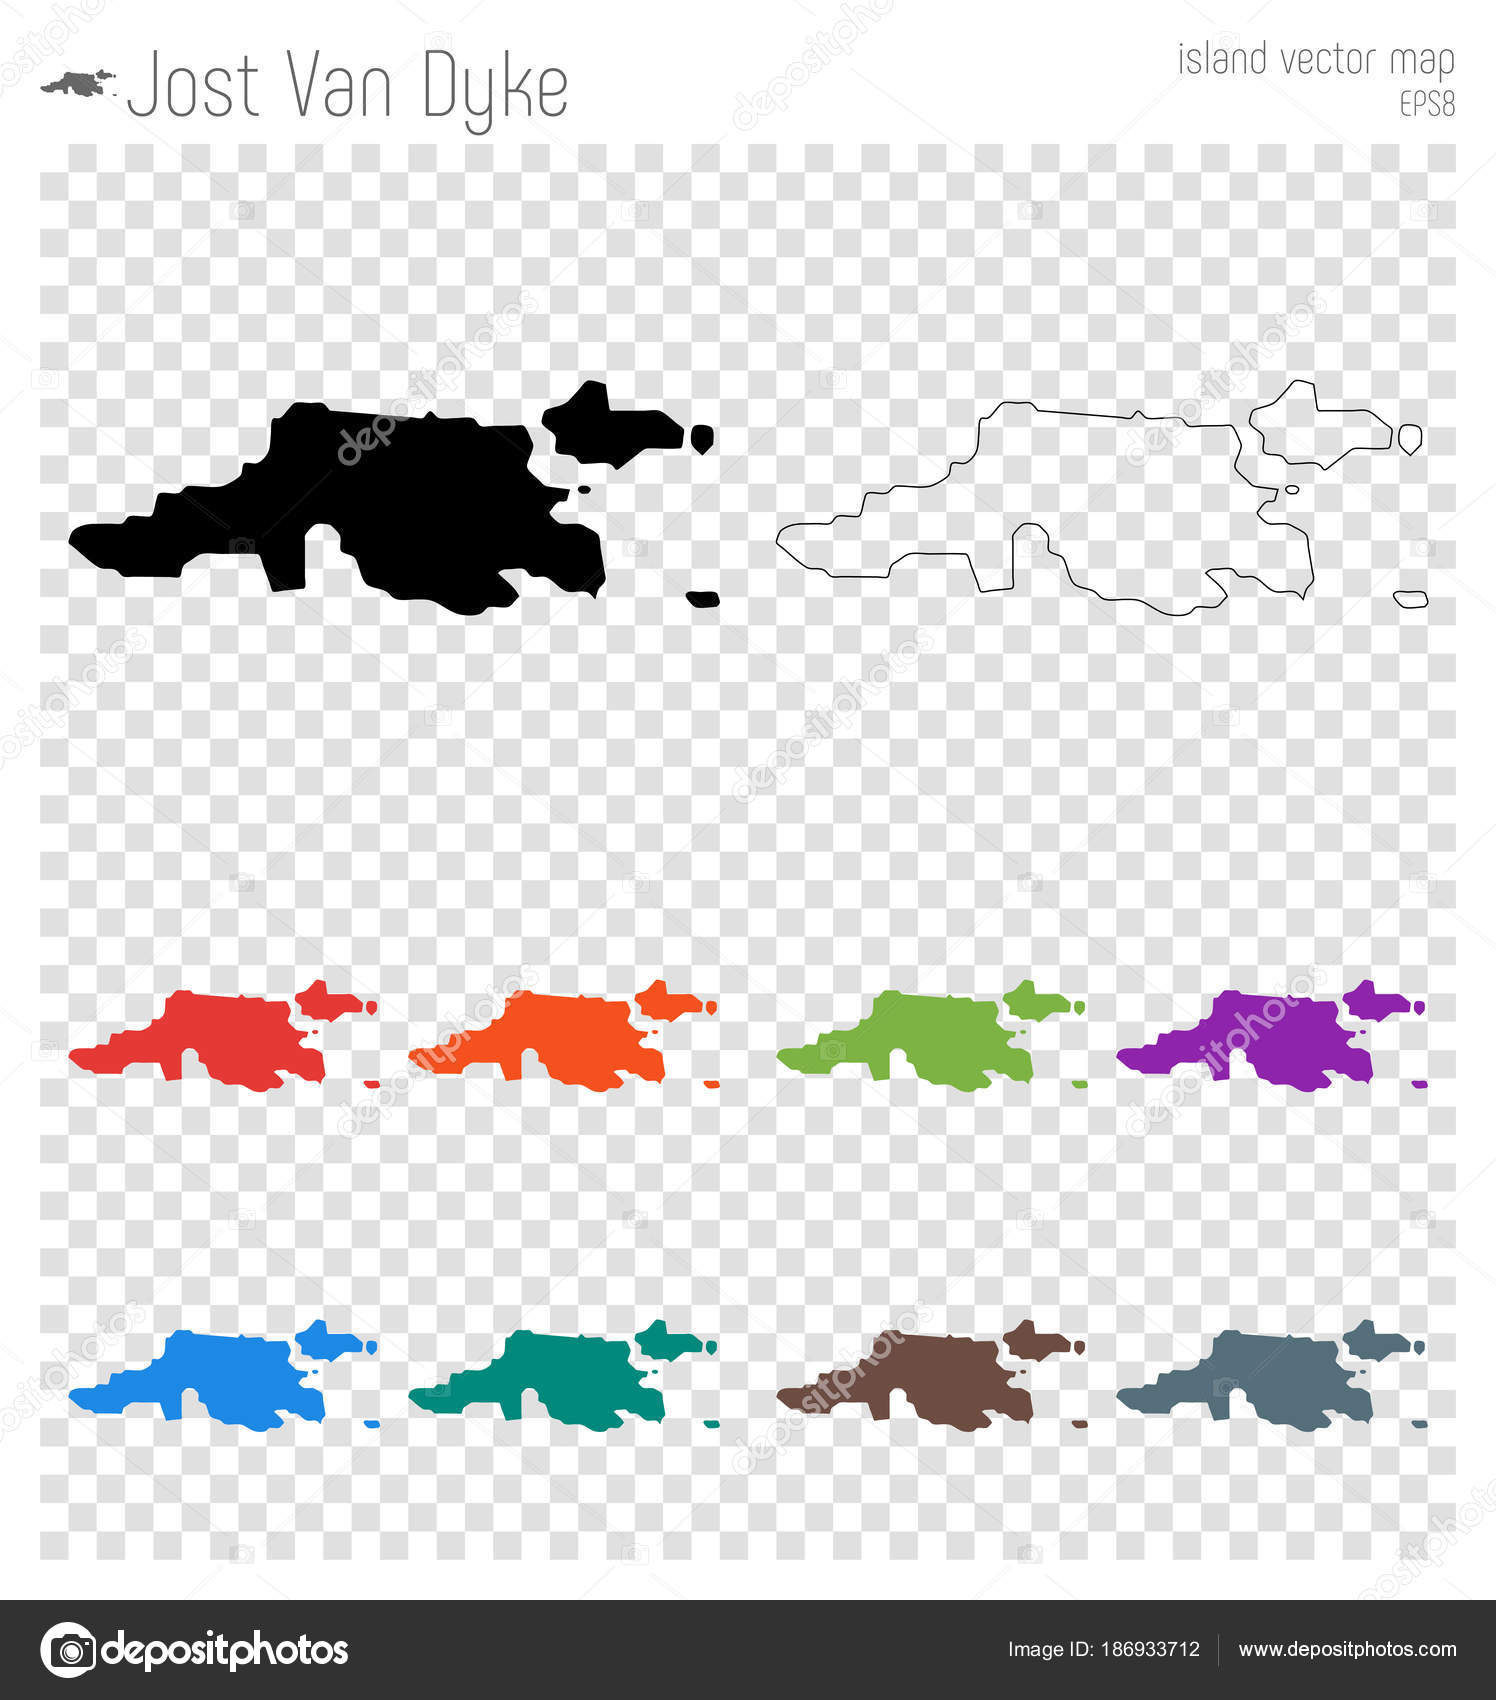 Jost Van Dyke high detailed map Island silhouette icon Isolated Jost